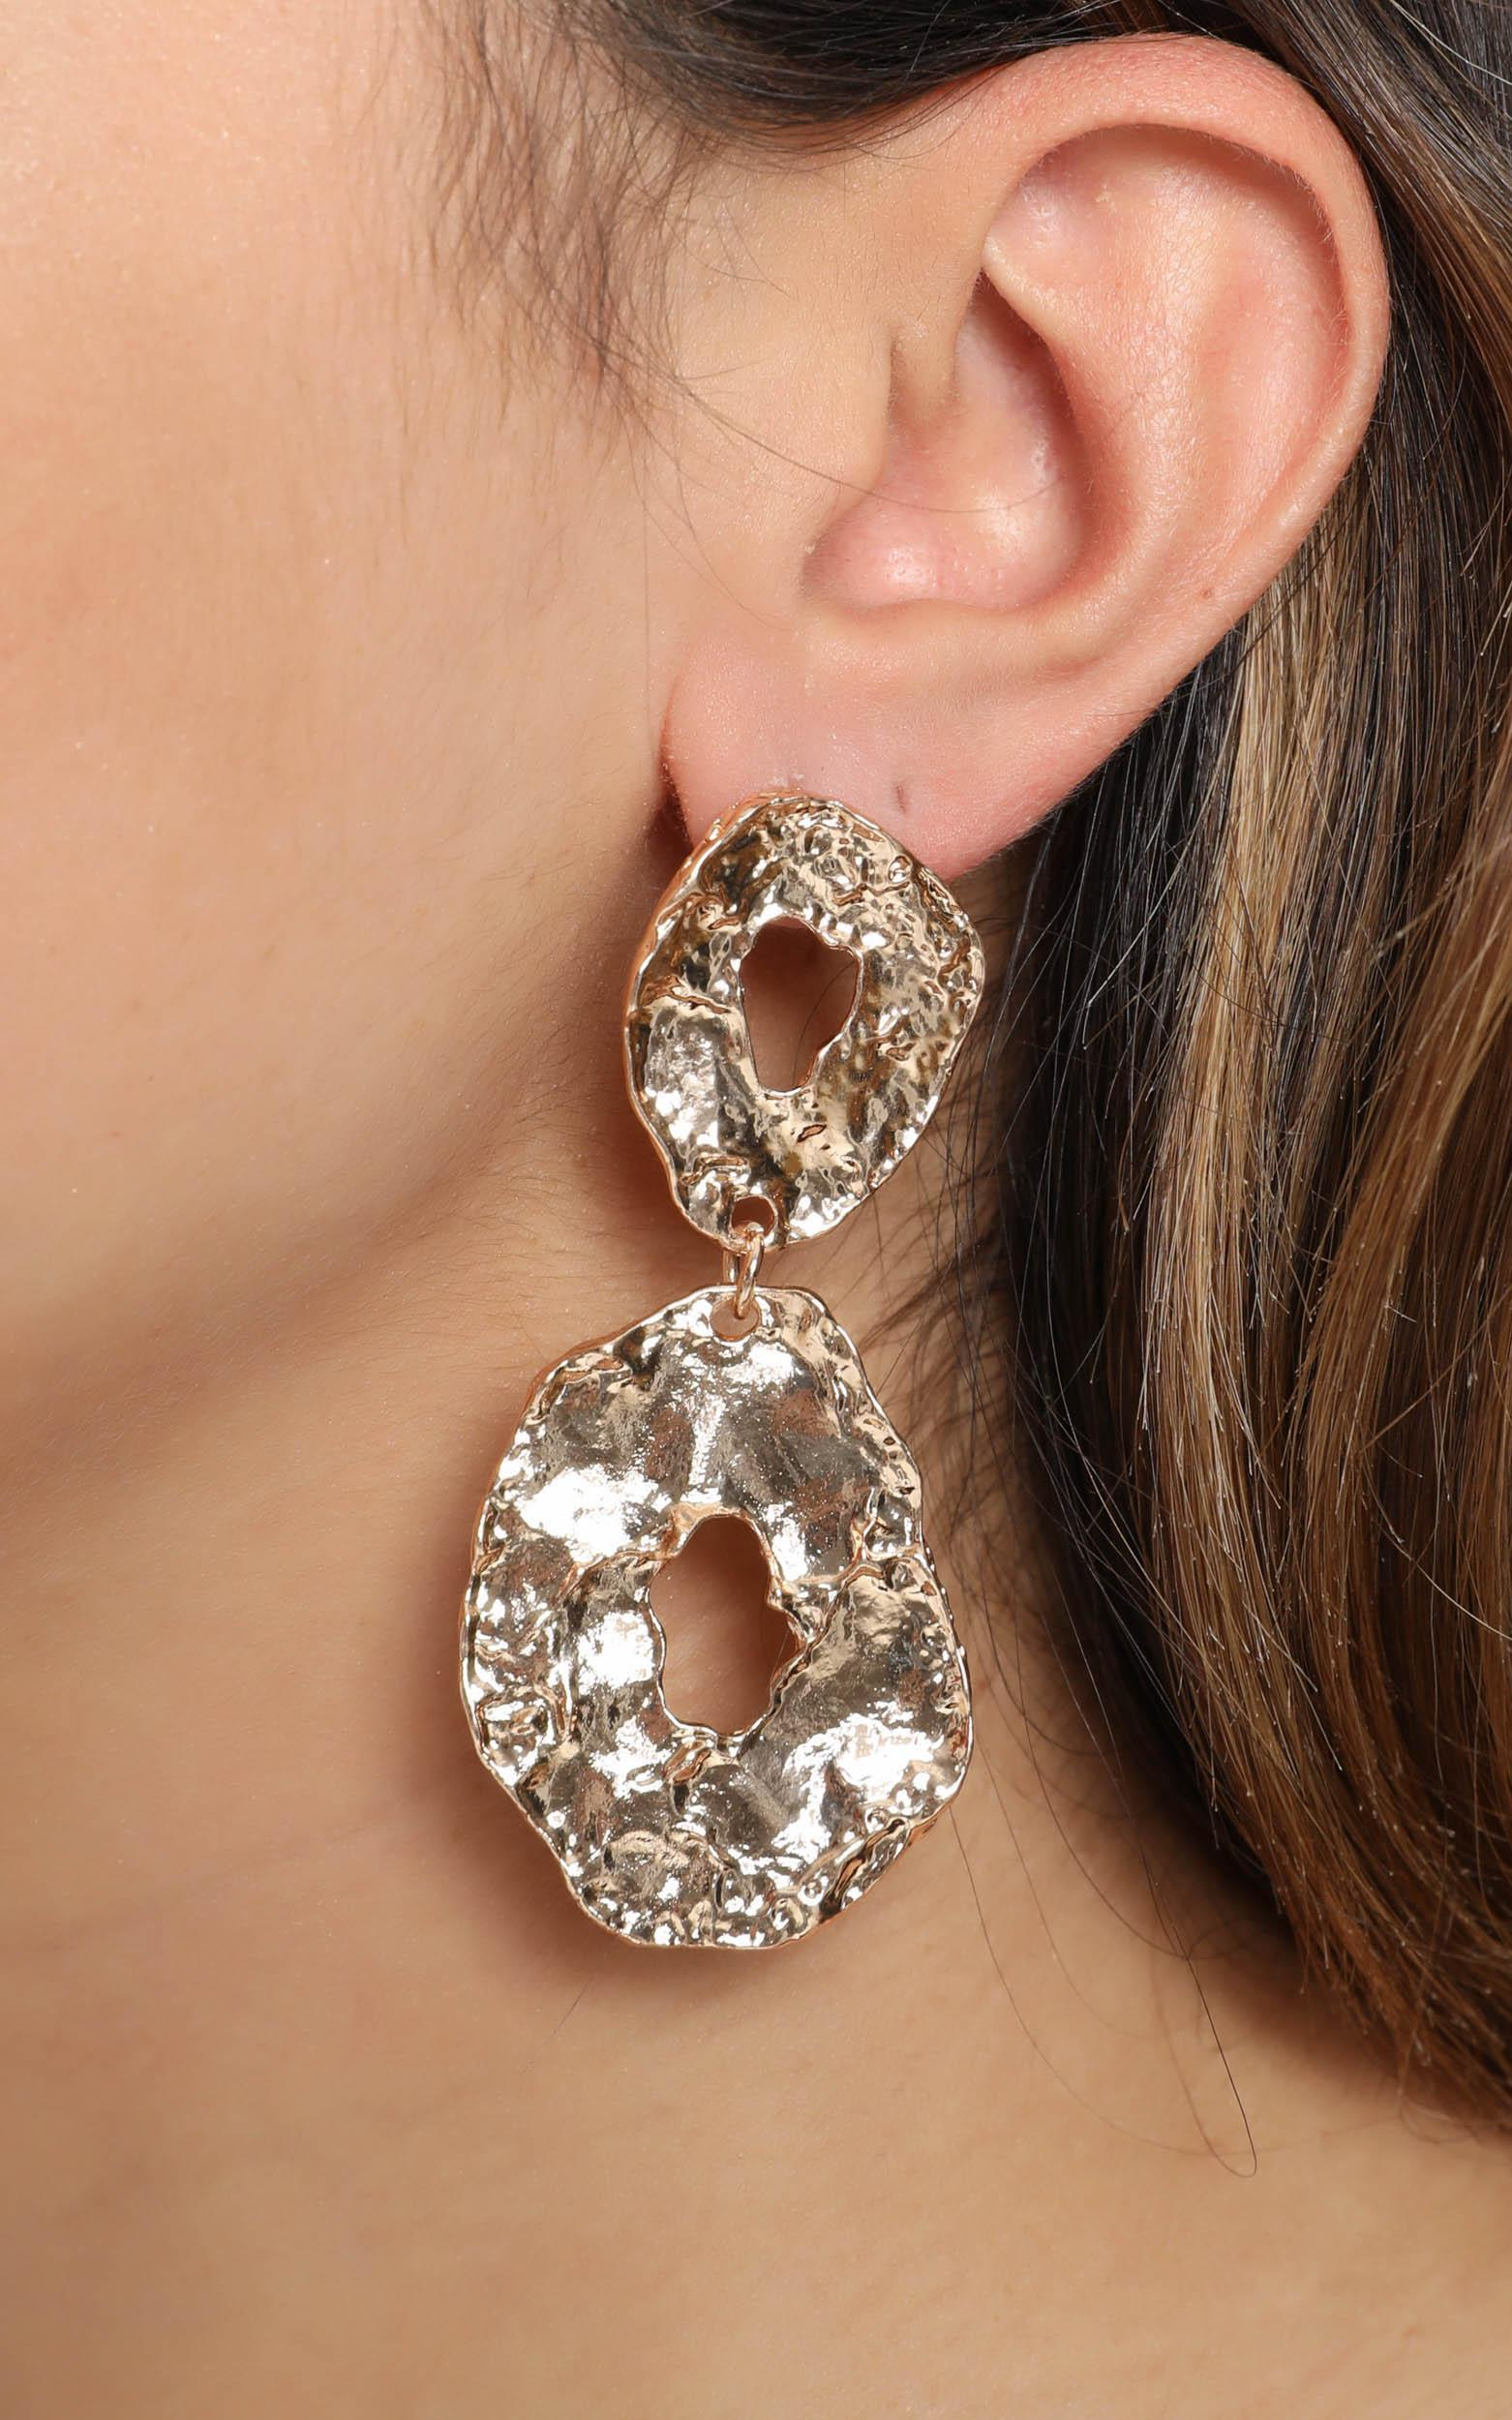 JT Luxe - Palermon Drop Earrings in Gold, , hi-res image number null